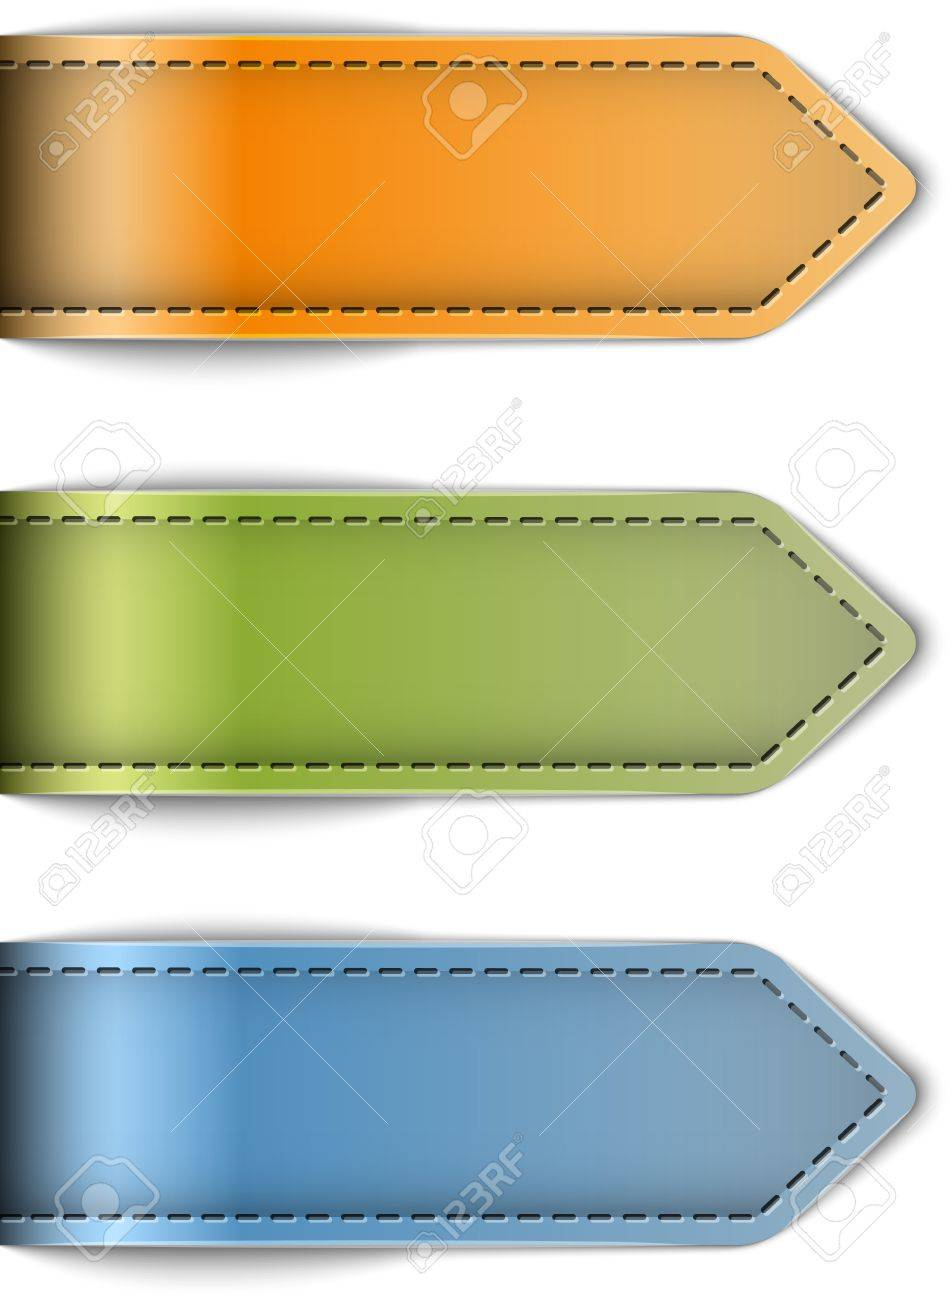 Tag Labels Made Of Leather. Arrows. Design Templates. Vector ...